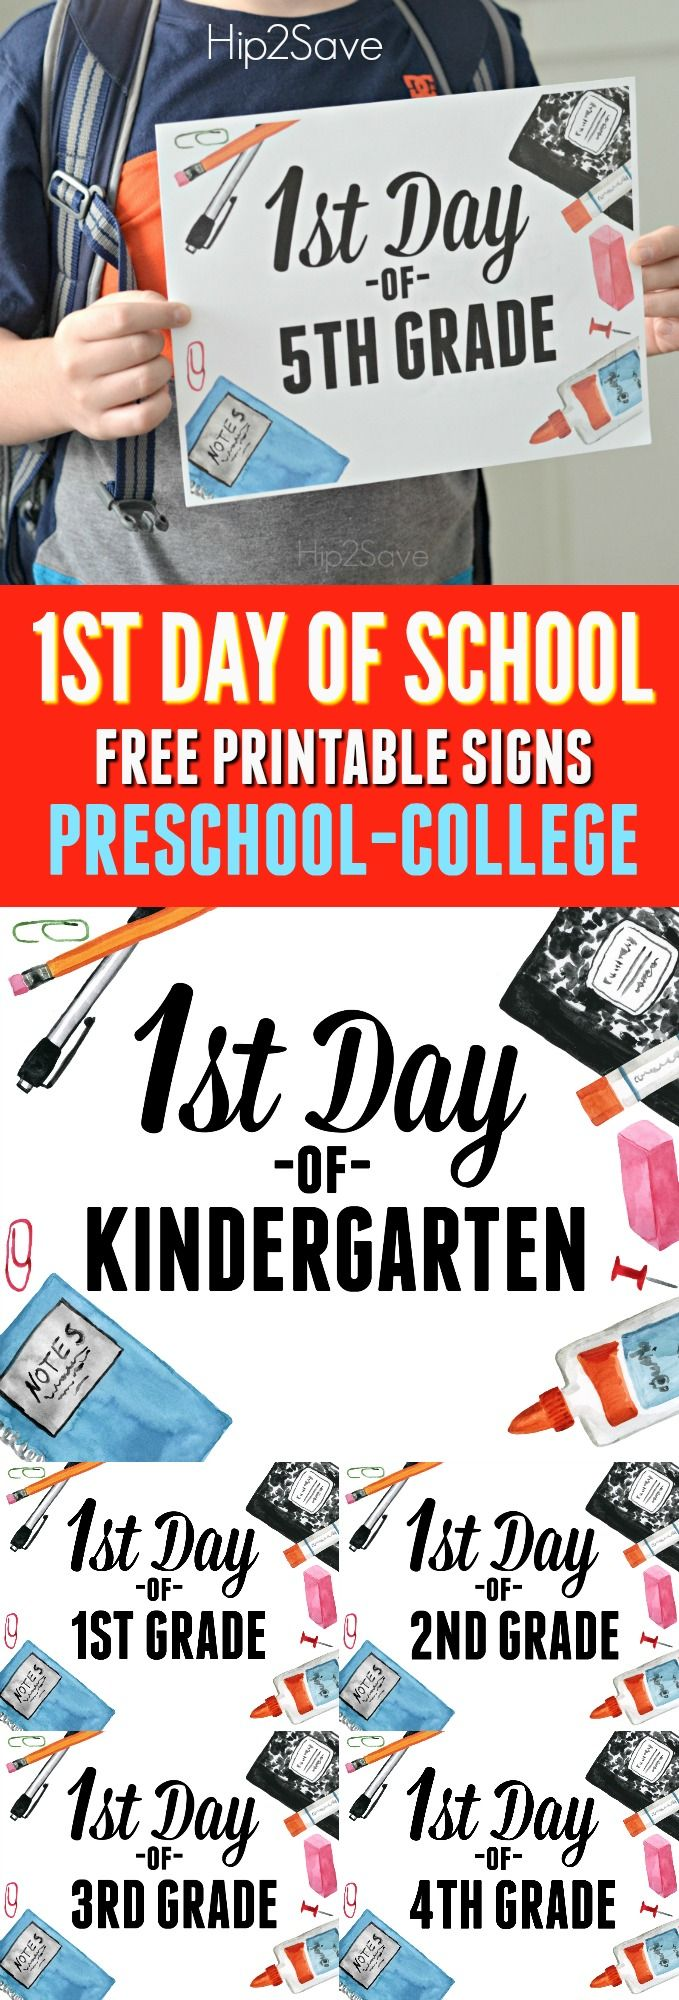 FREE First Day of School Printable Signs #firstdayofschoolsign